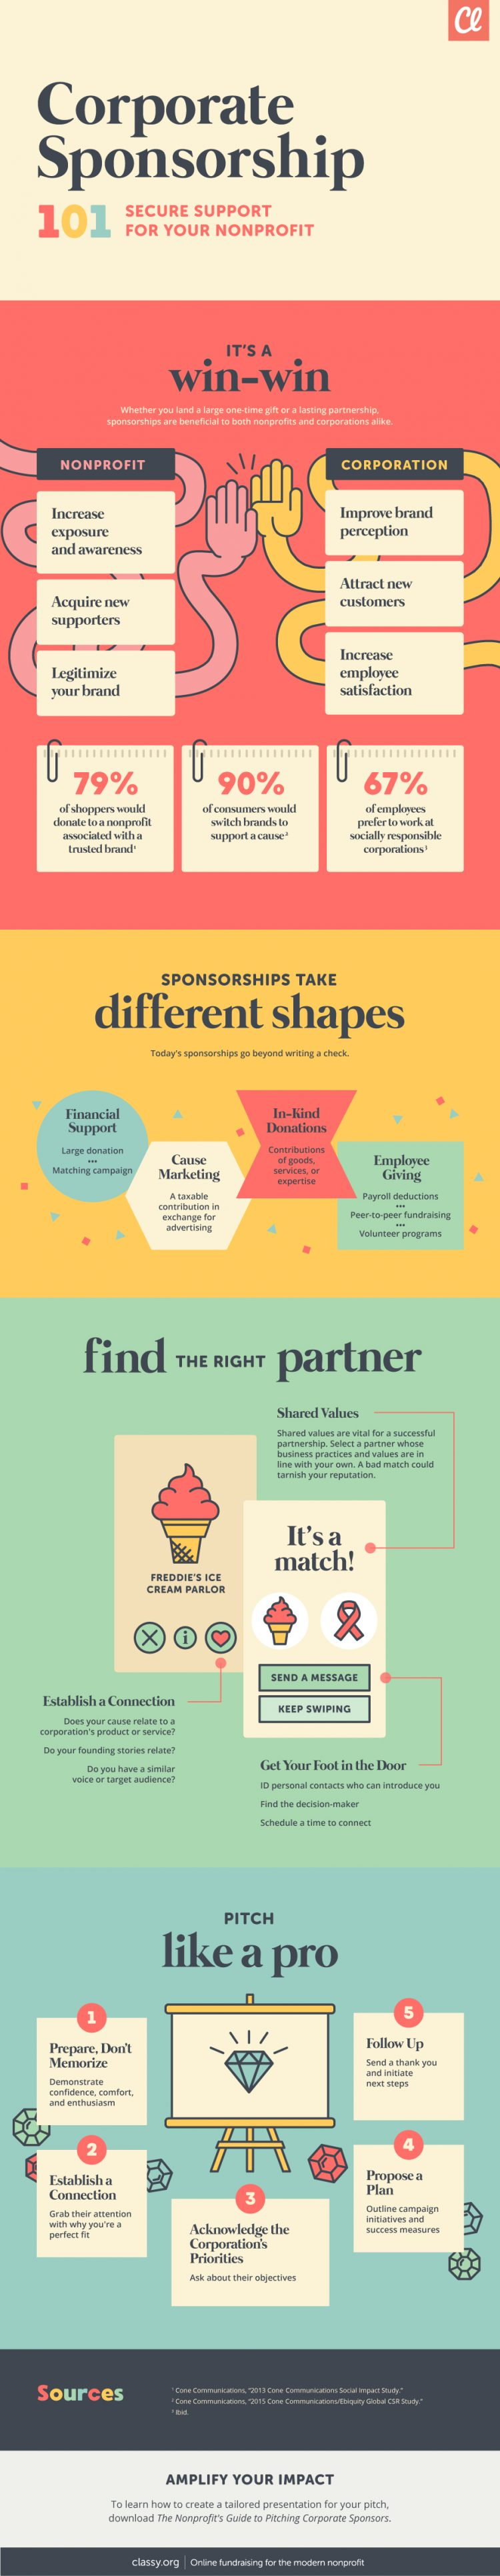 corporate sponsorships infographic